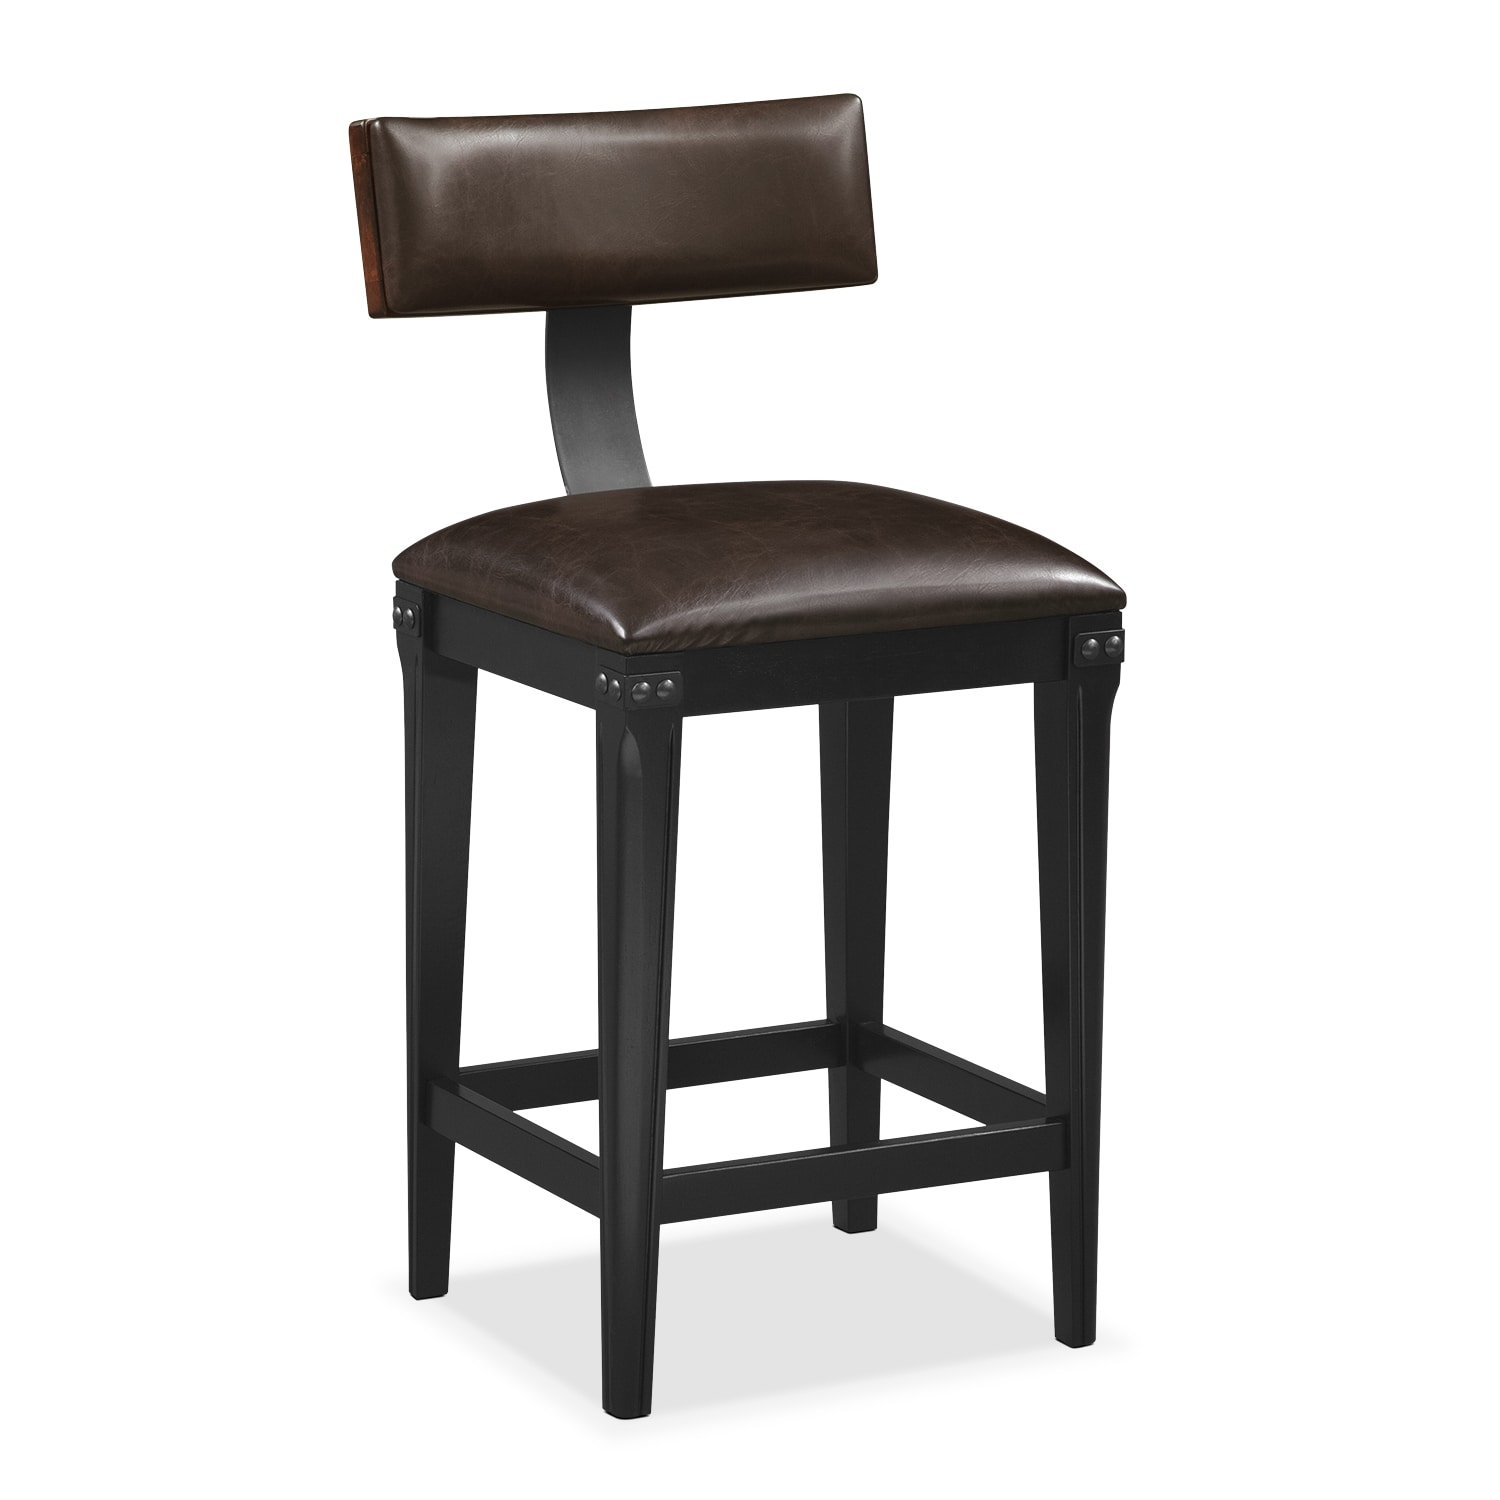 Newcastle Counter Height Stool   Mahogany